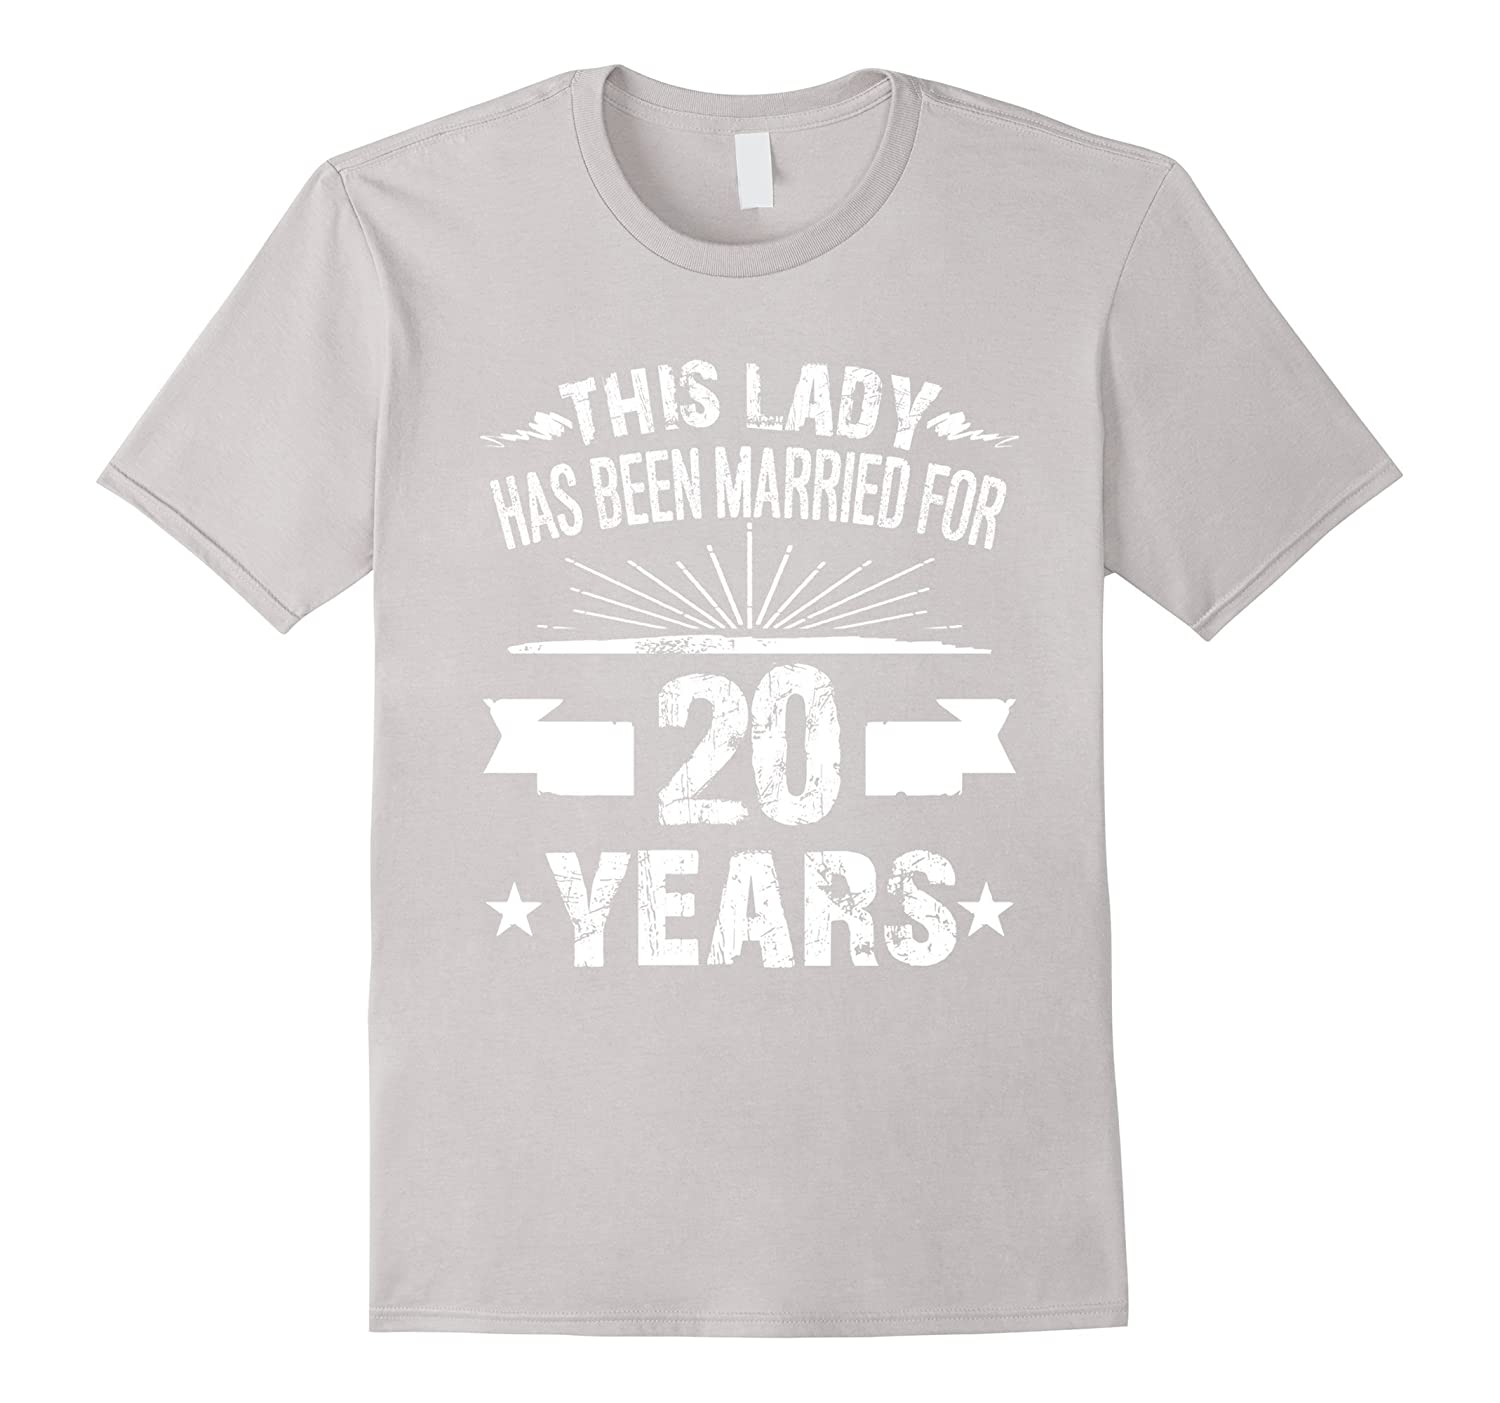 20 Year Wedding Anniversary Gifts For Her: 20th Wedding Anniversary Gifts 20 Year Shirt For Her-RT